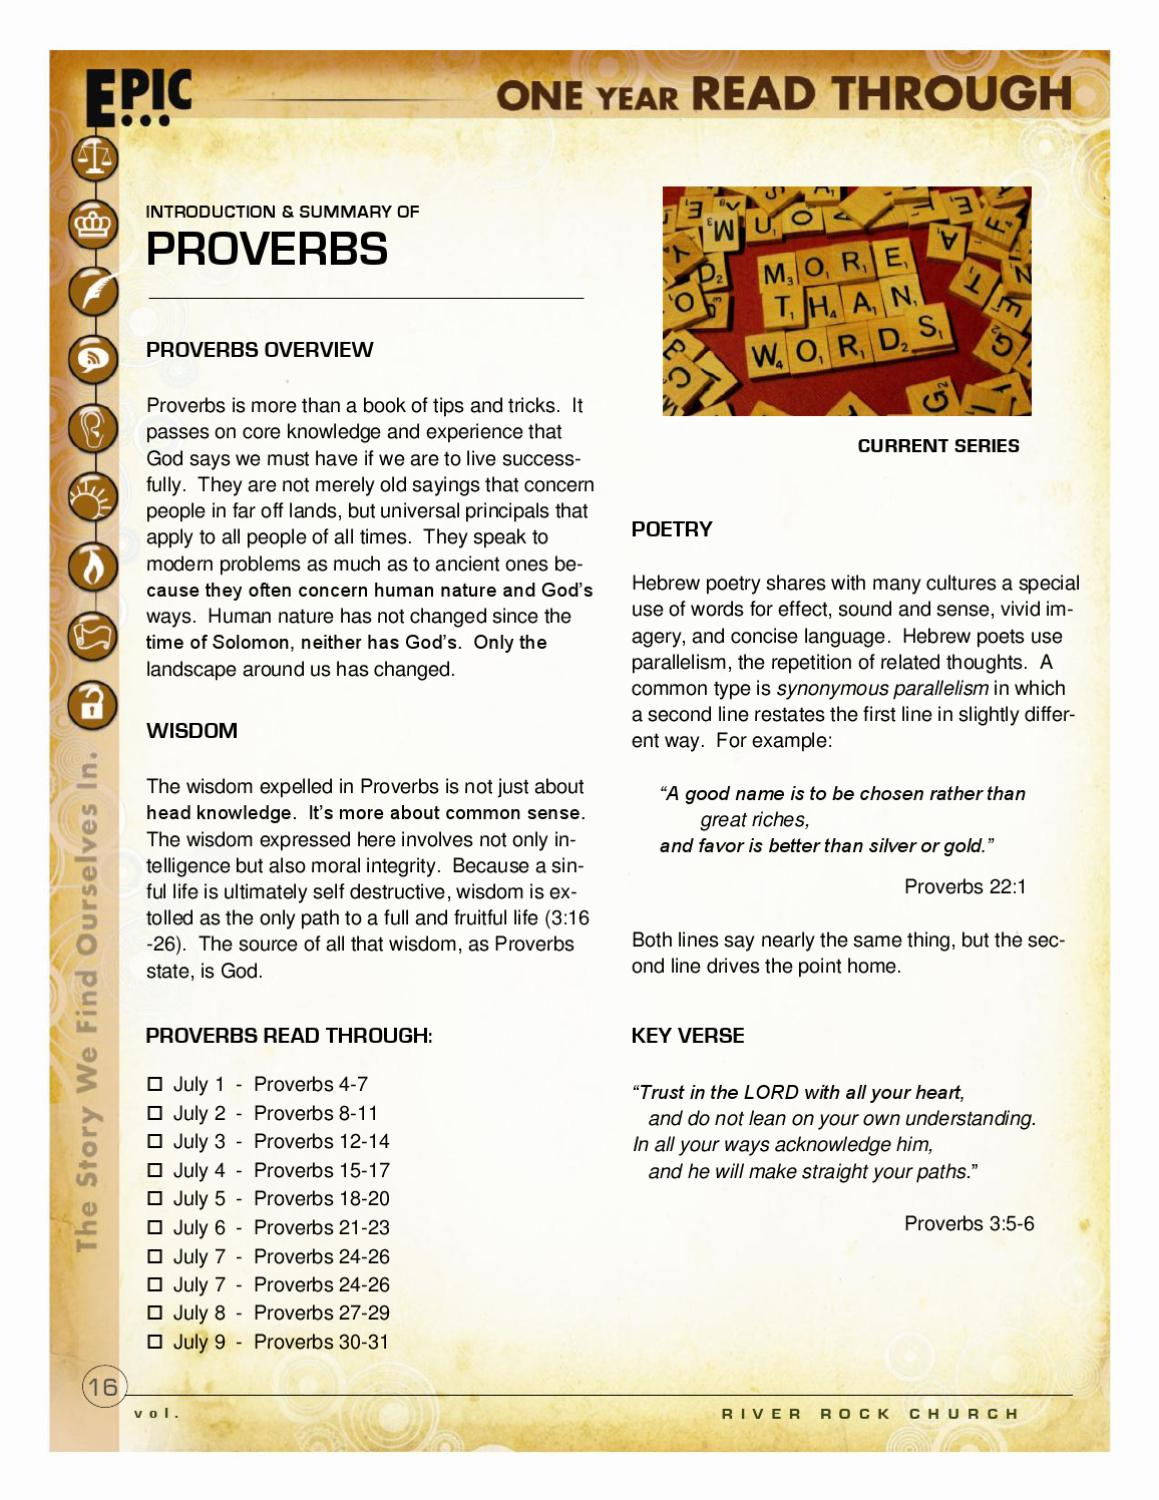 PROVERBS DEEPER SHEET by River Rock Church - issuu